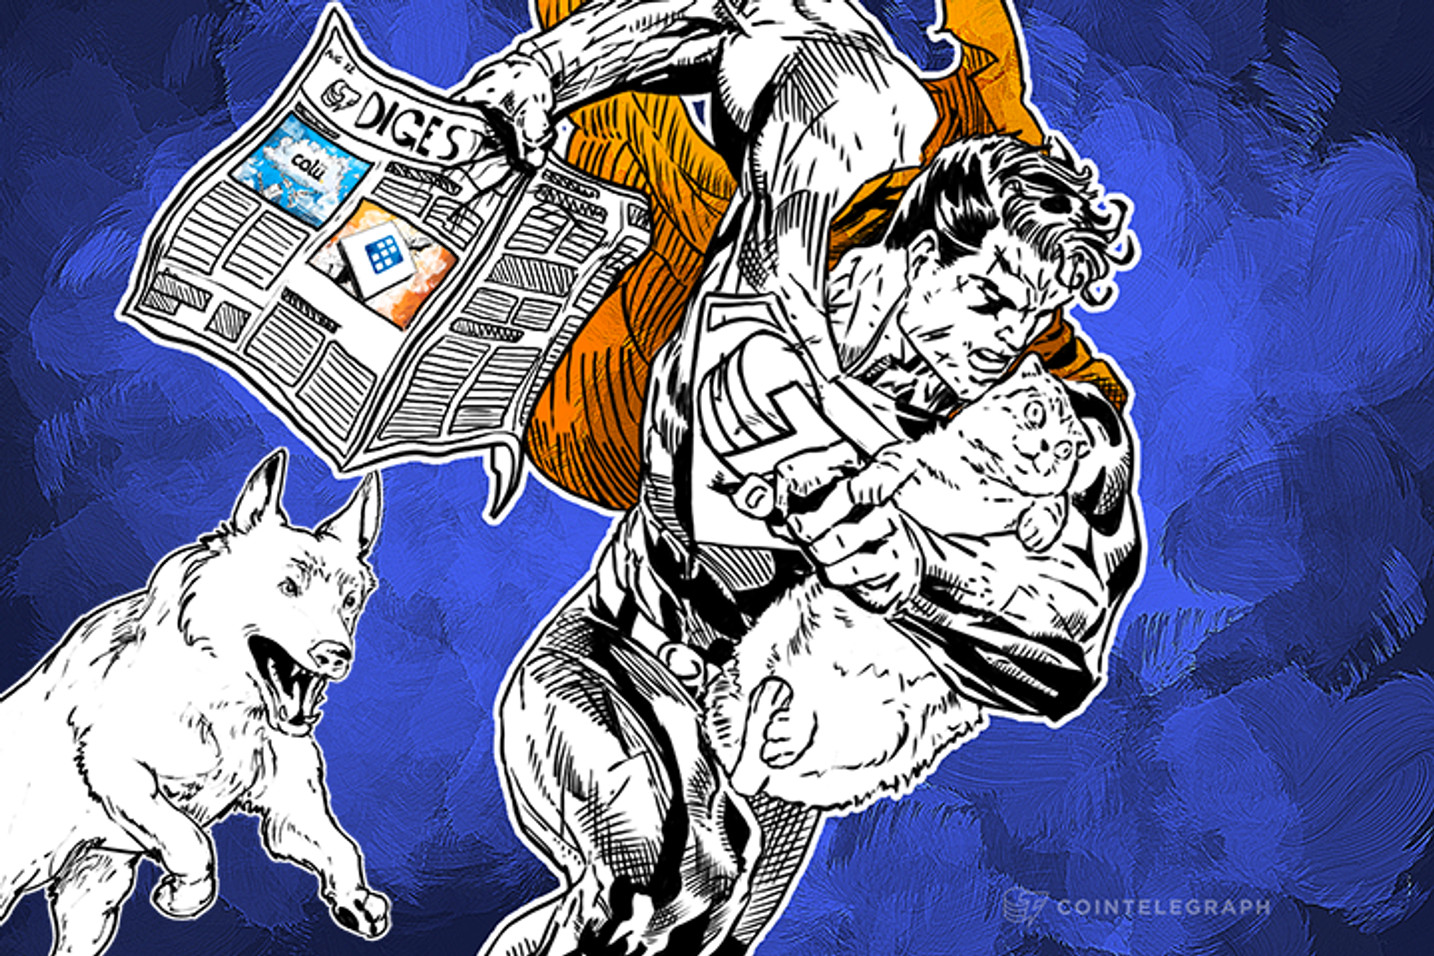 AUG 12 DIGEST: Visa to Start Blockchain Research; LocalBitcoins & BitQuick Join NY Exodus